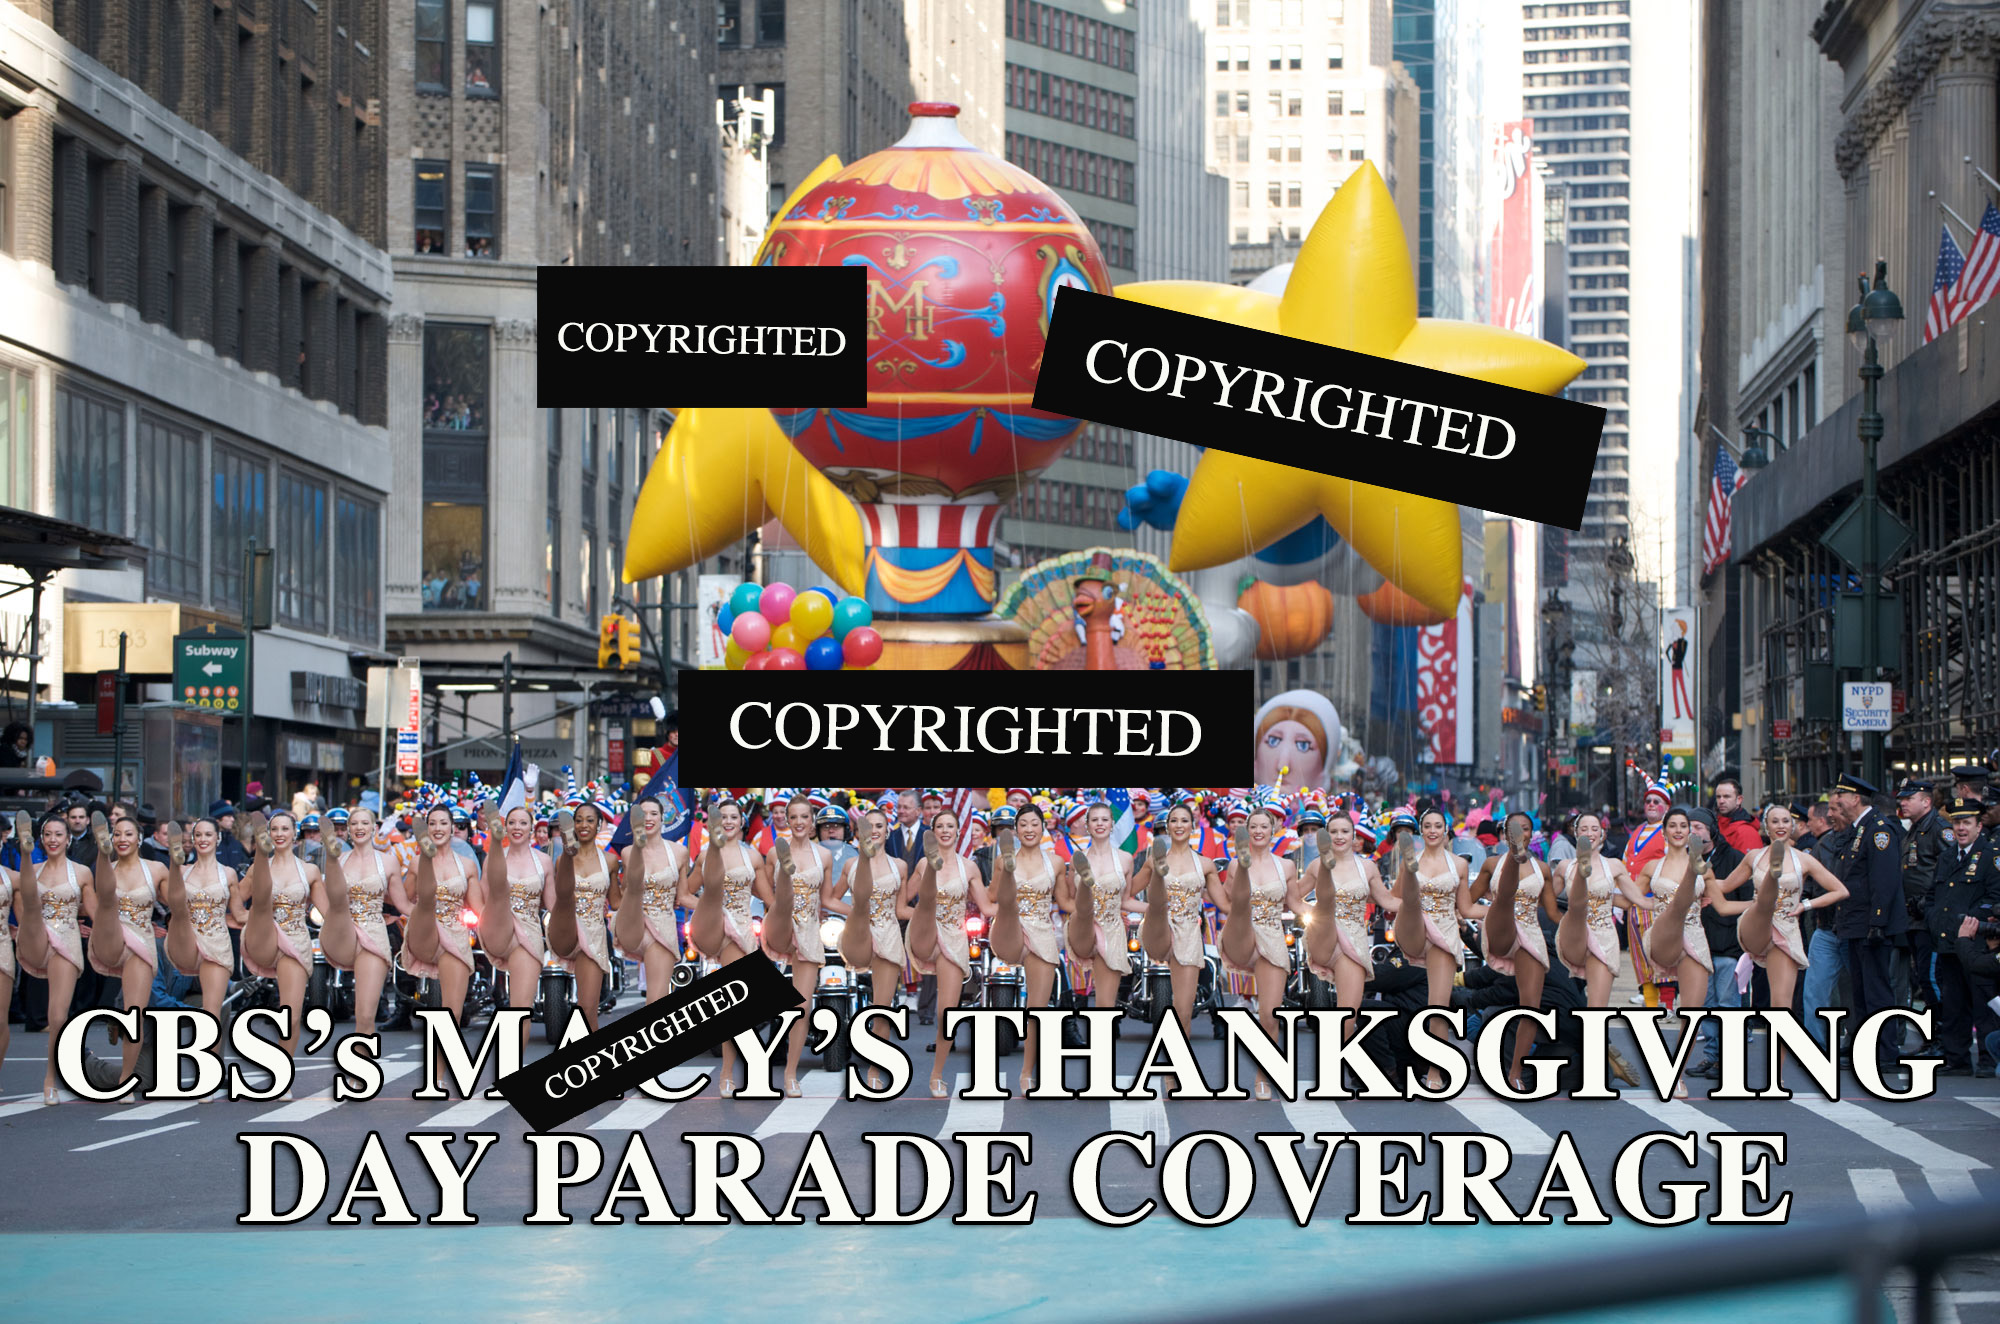 CBS Thanksgiving Day Parade broadcast show coverage review